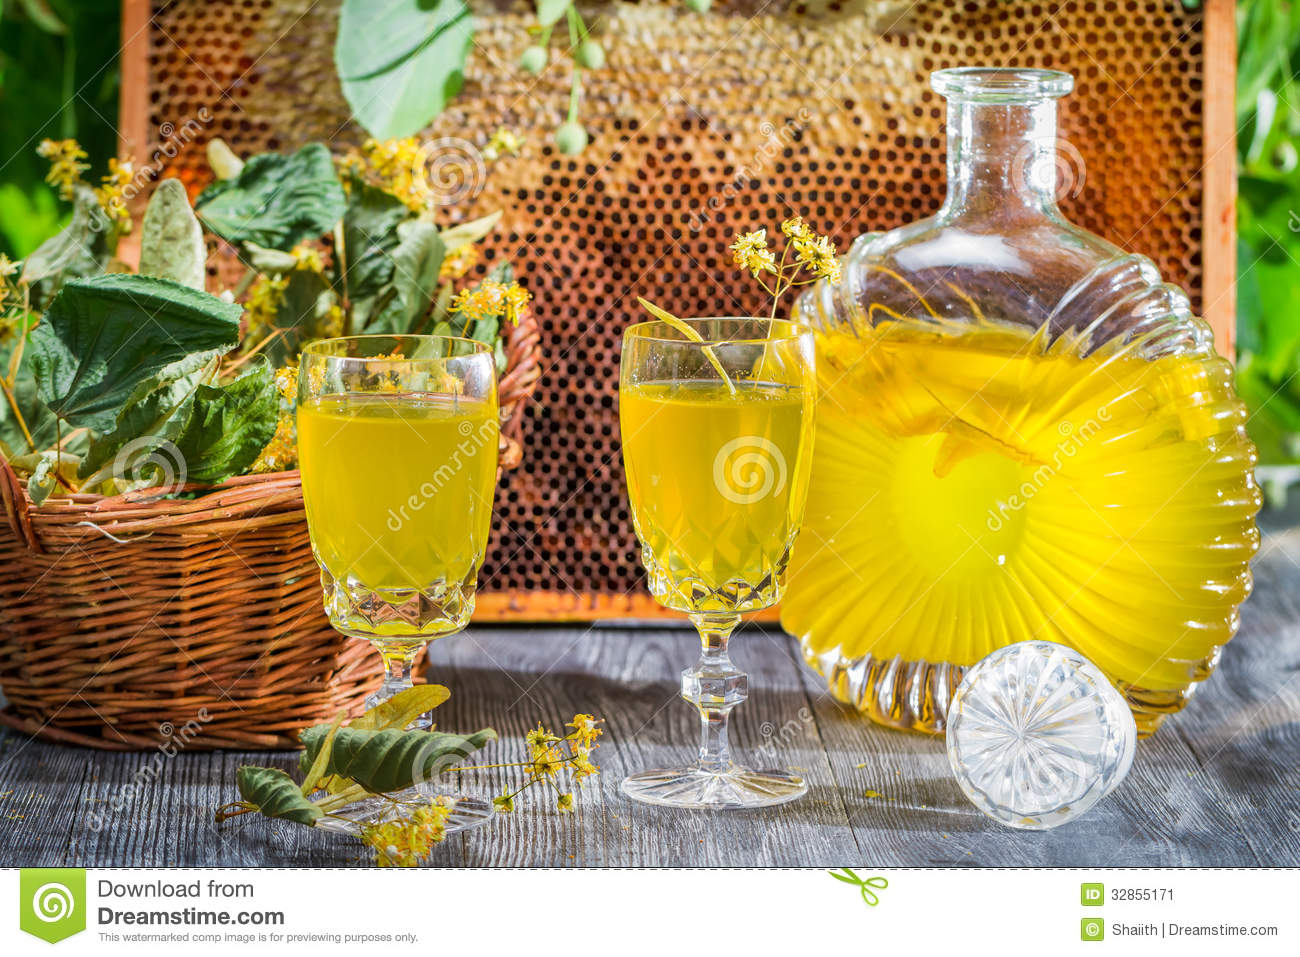 Homemade liqueur made of honey and lime on old wooden table.